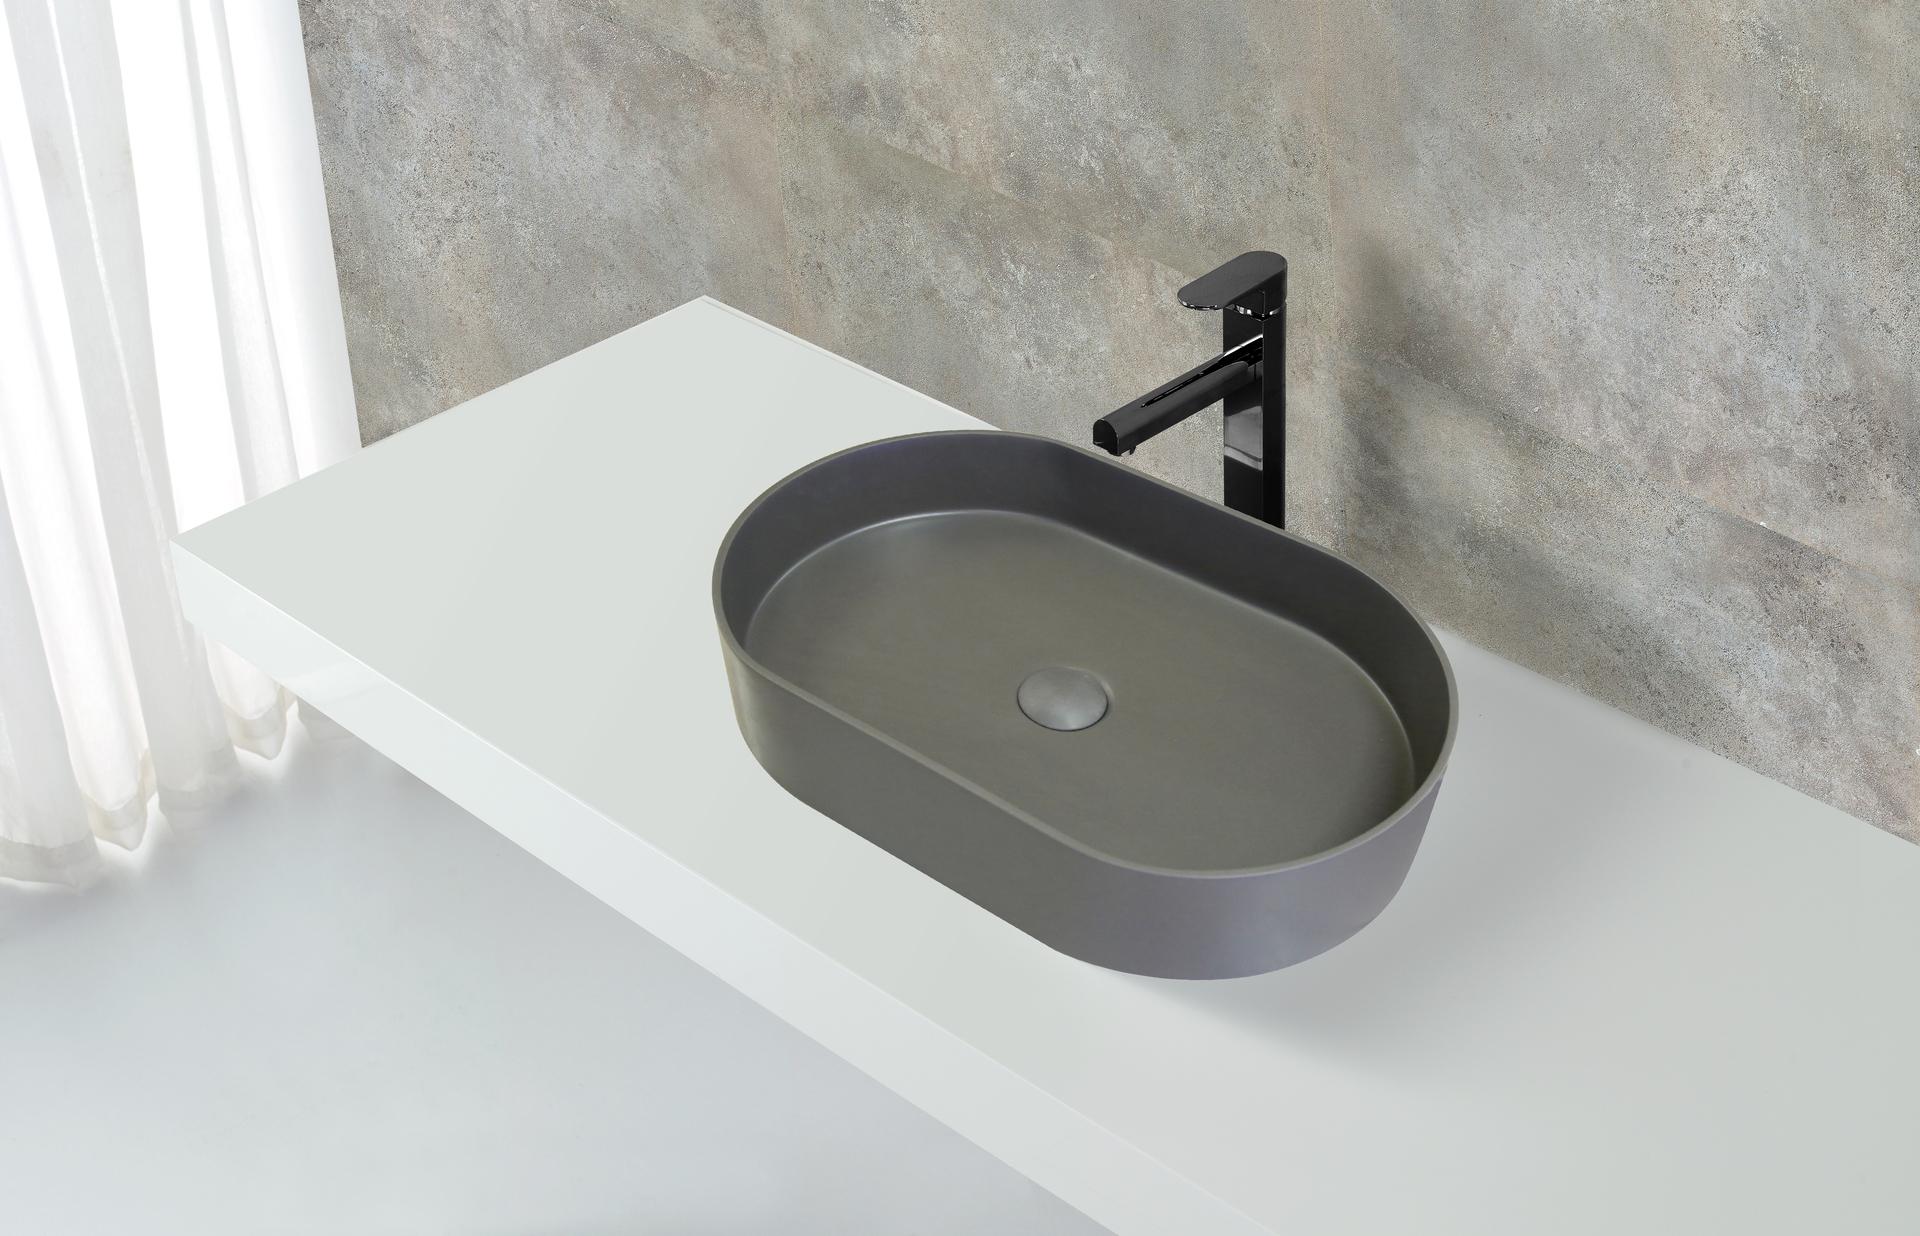 solid wash oval above counter basin KingKonree manufacture